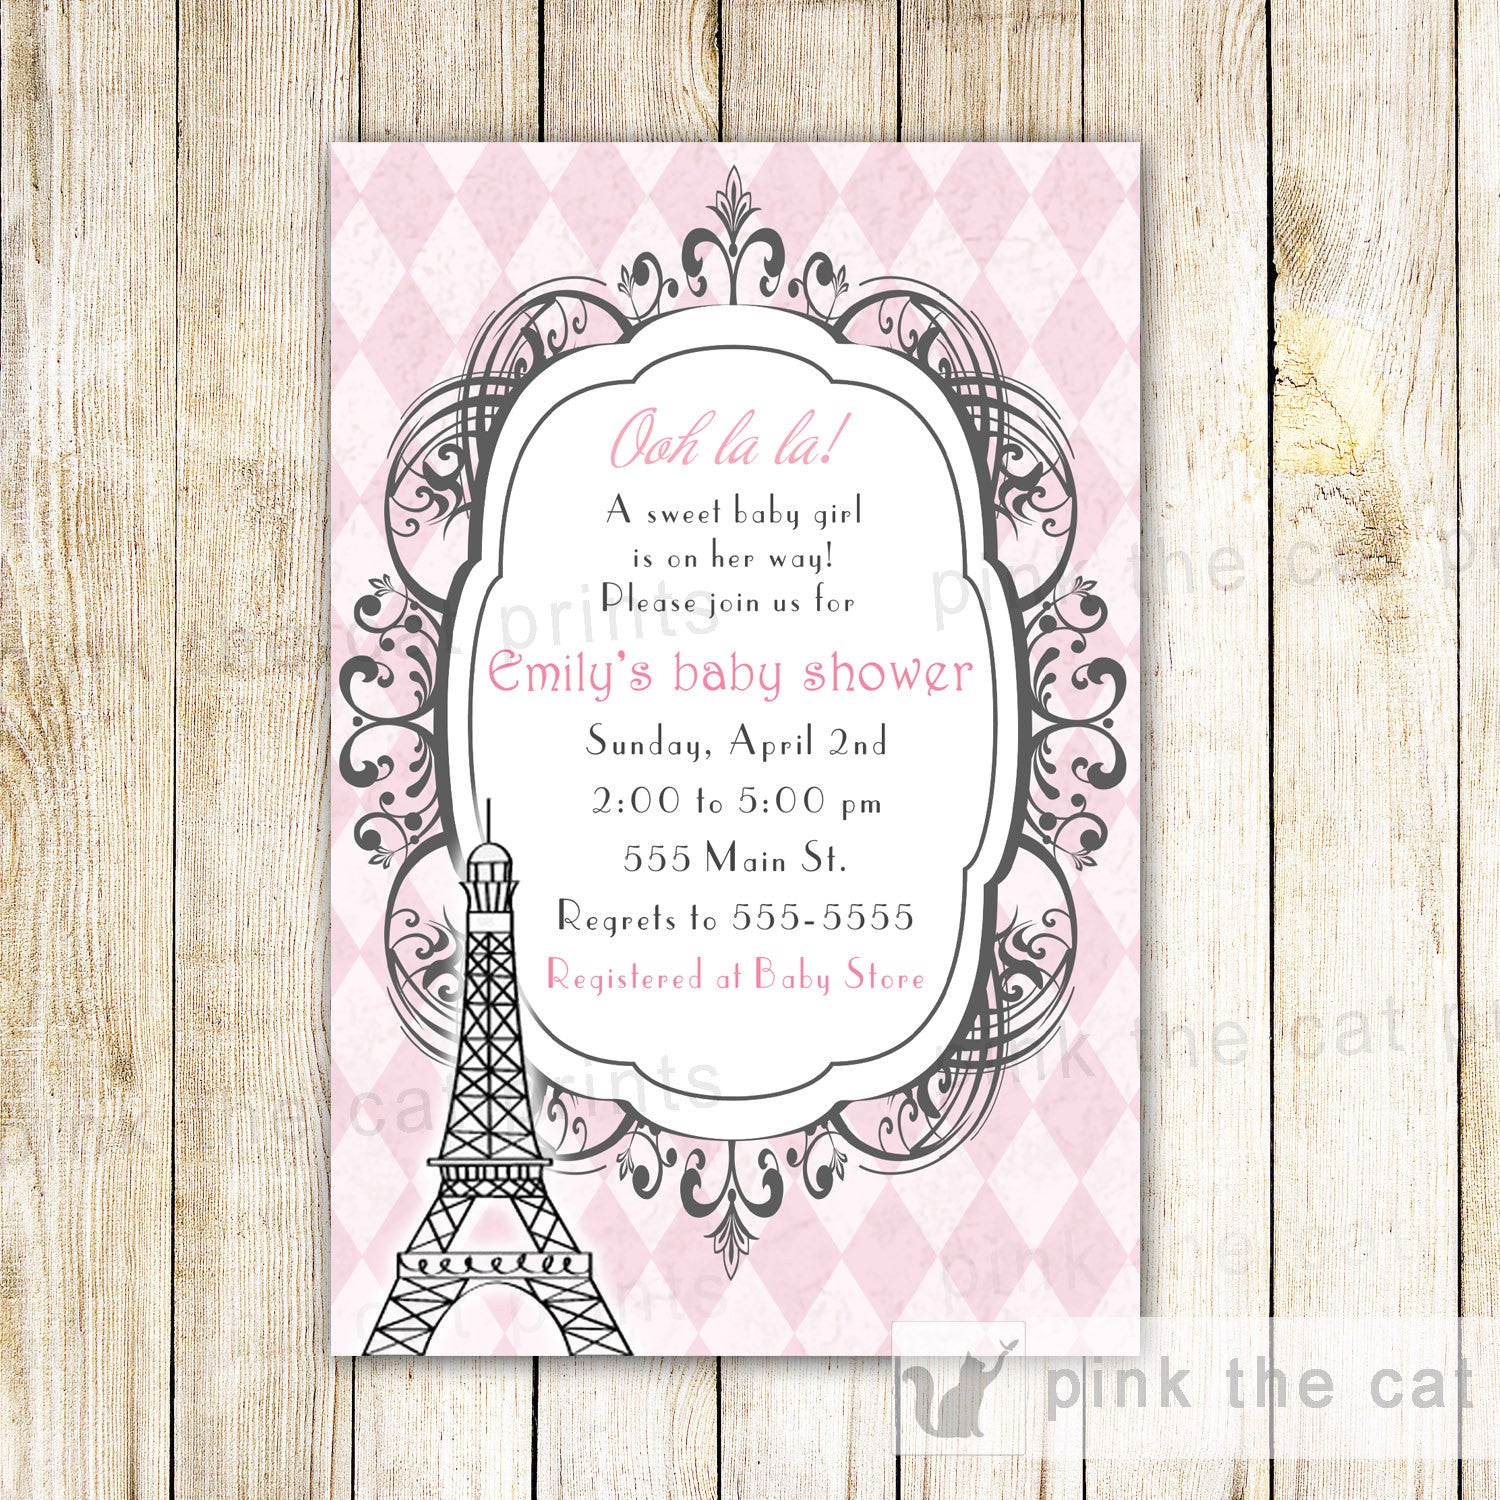 Vintage Chic Paris Invitation Baby Girl Shower Birthday – Pink The Cat